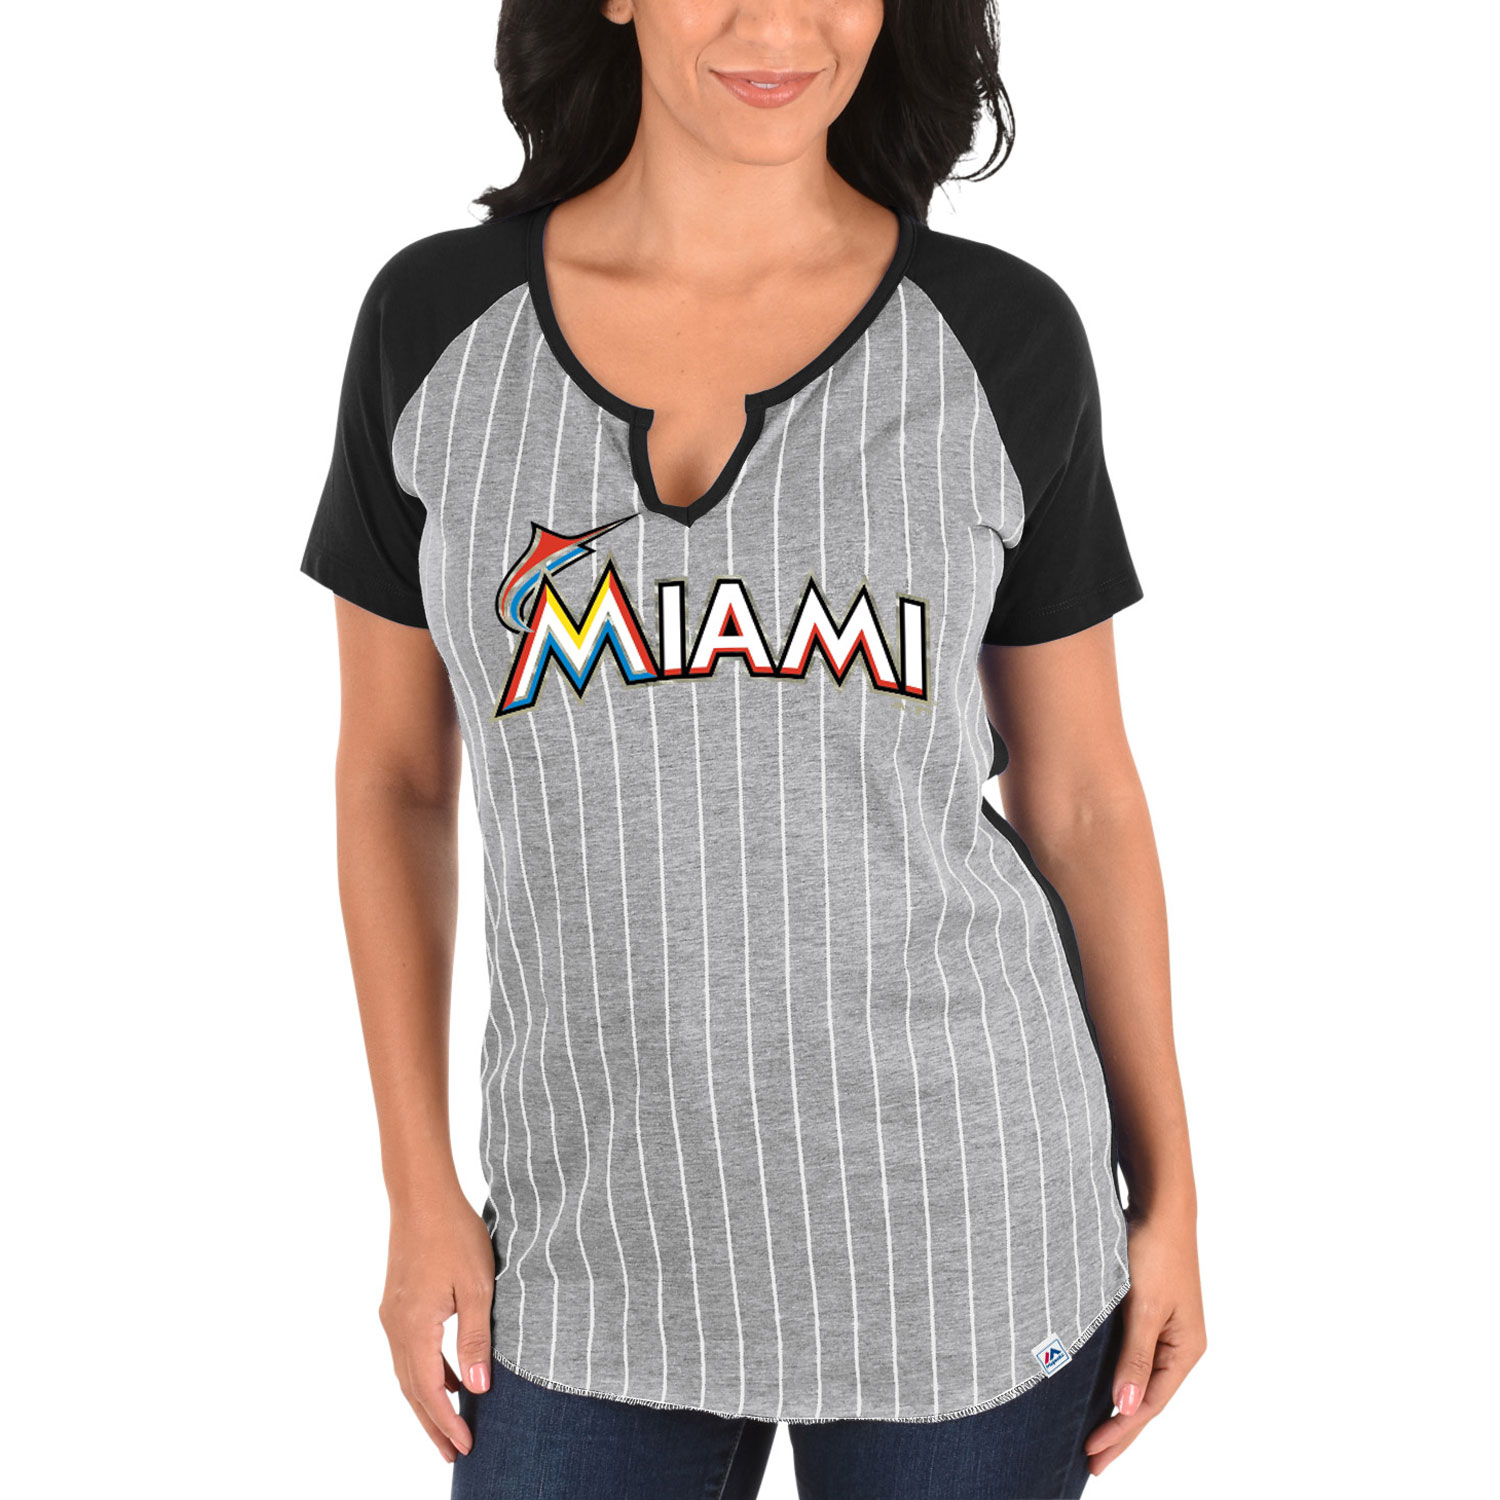 Miami Marlins Majestic Women's From the Stretch V-Notch T-Shirt - Gray/Black